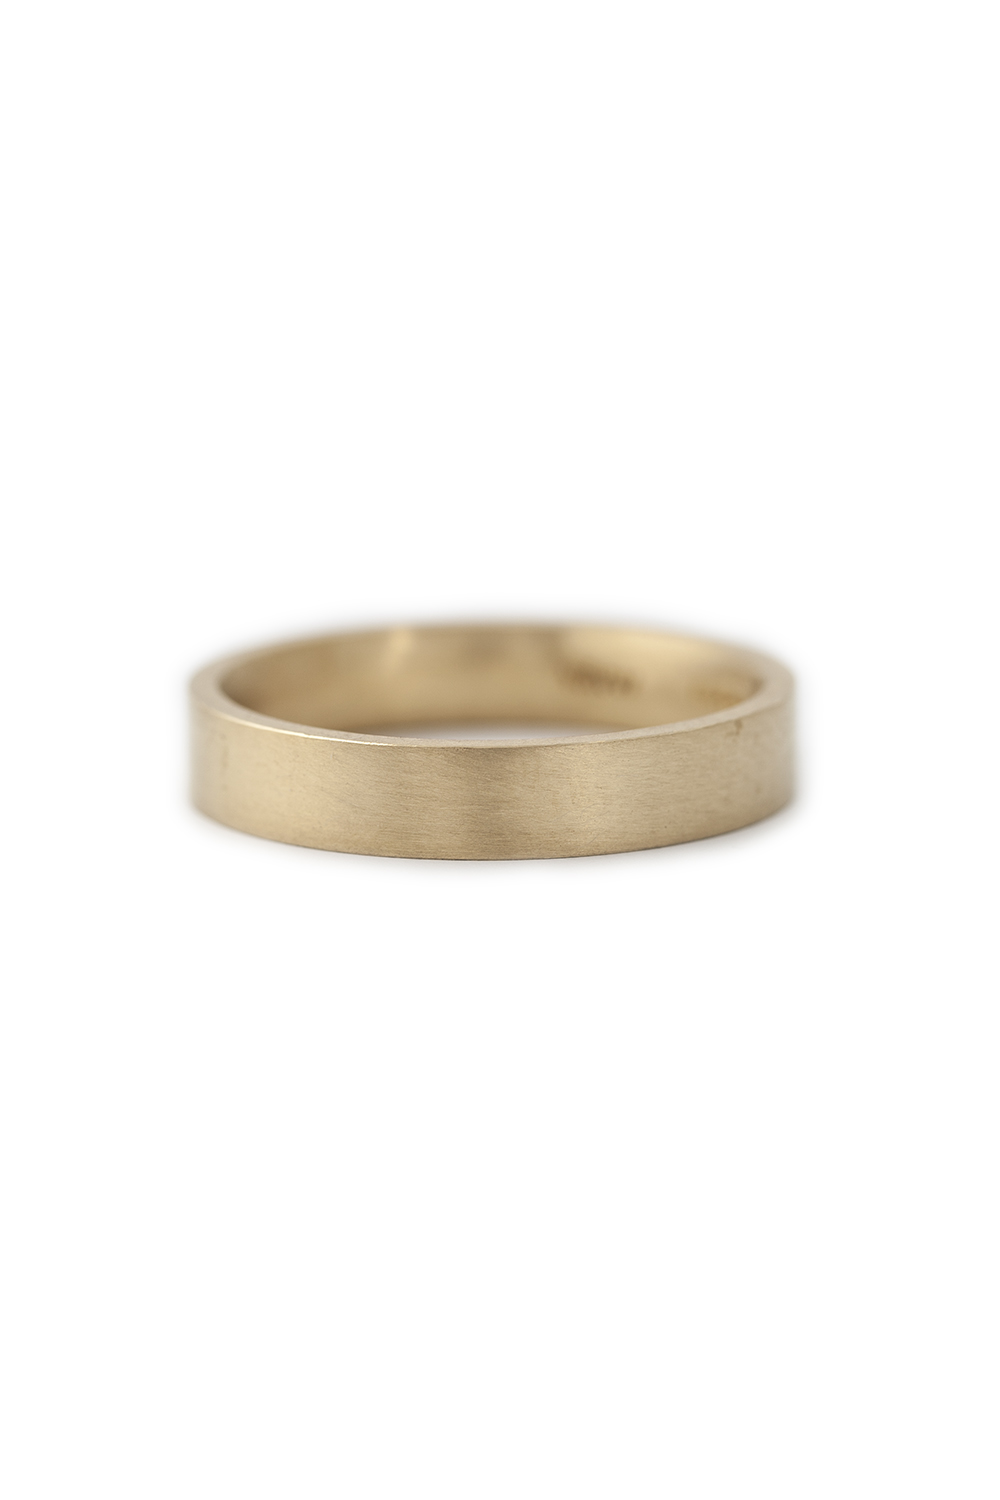 Yellow gold wide band with flat edge, £1250